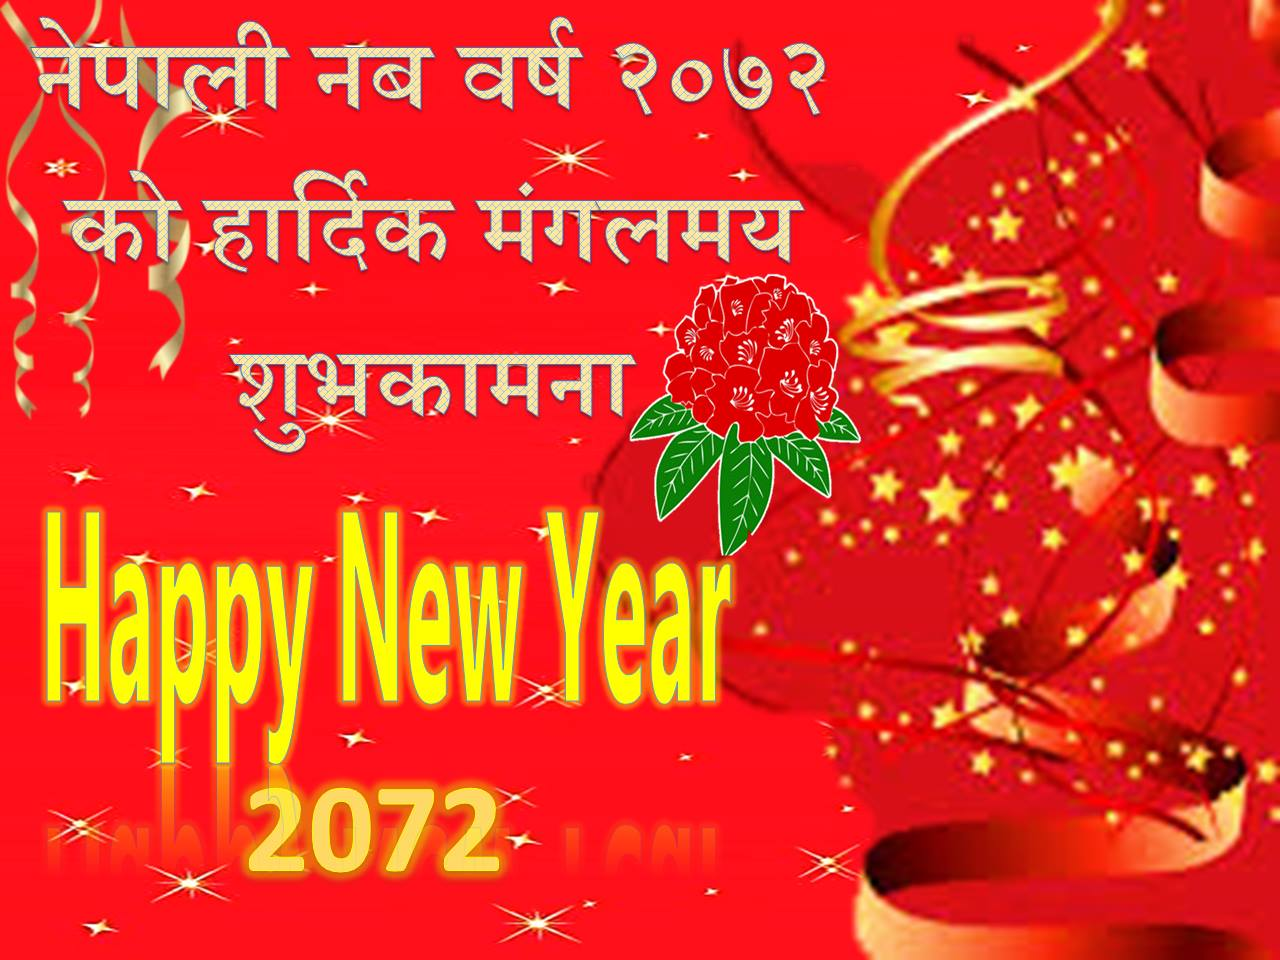 new home association happy new year 2072 to all our nepalese friends